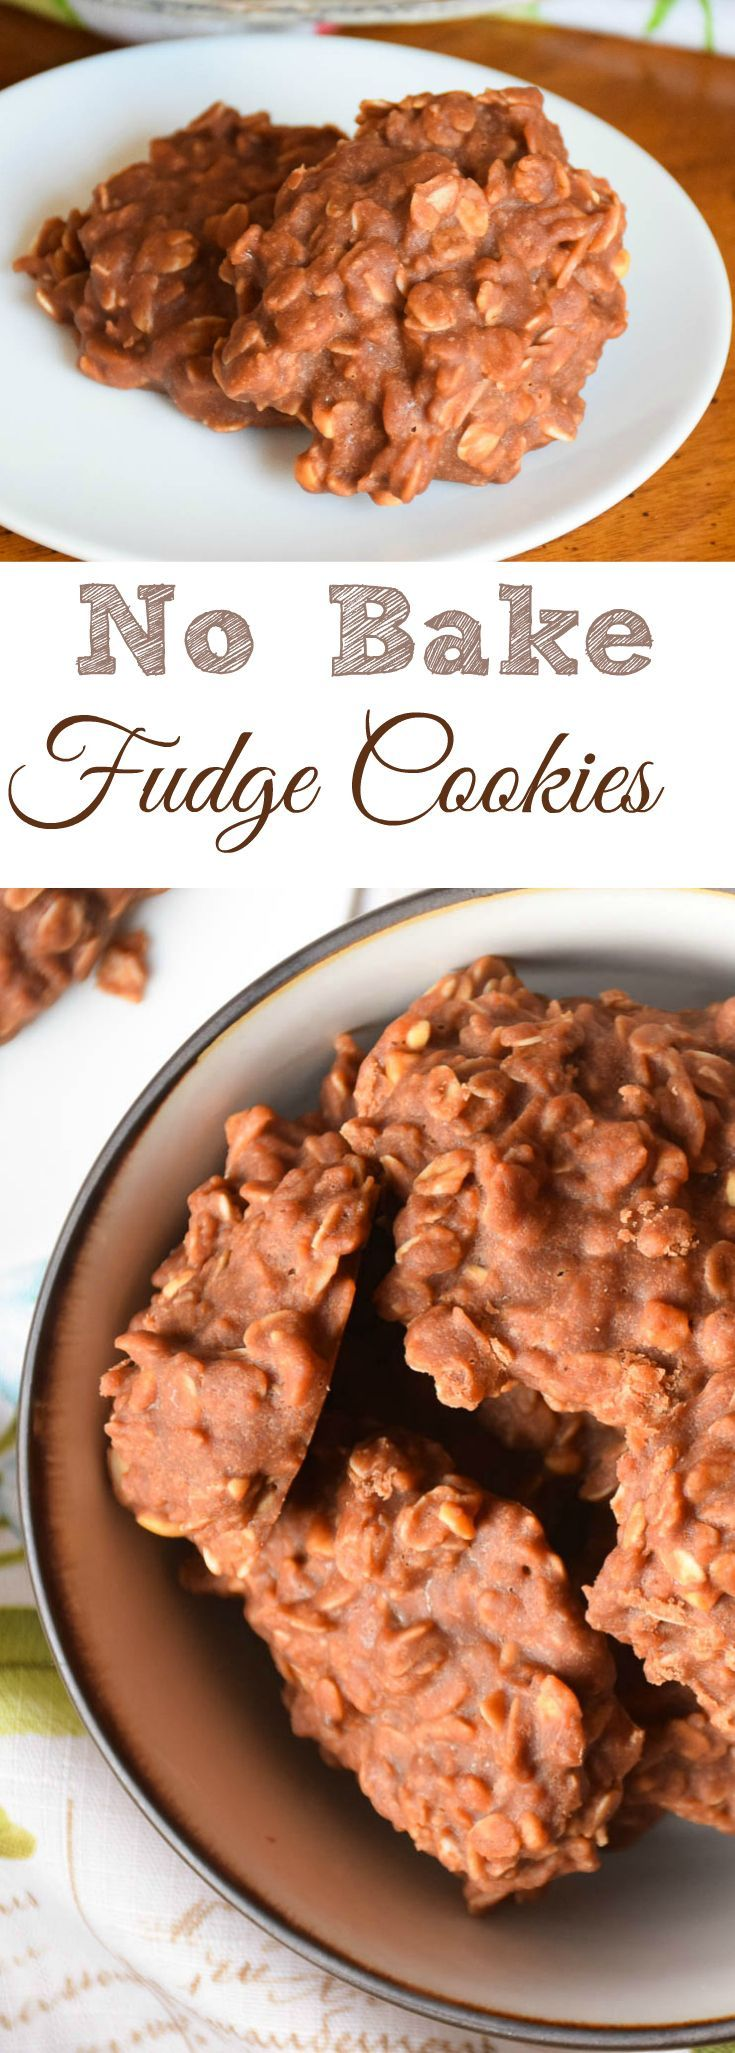 No Bake Fudge Cookies are like your favorite piece of chocolate fudge with coconut and oatmeal stirred in! A favorite that is easy to make with practice!